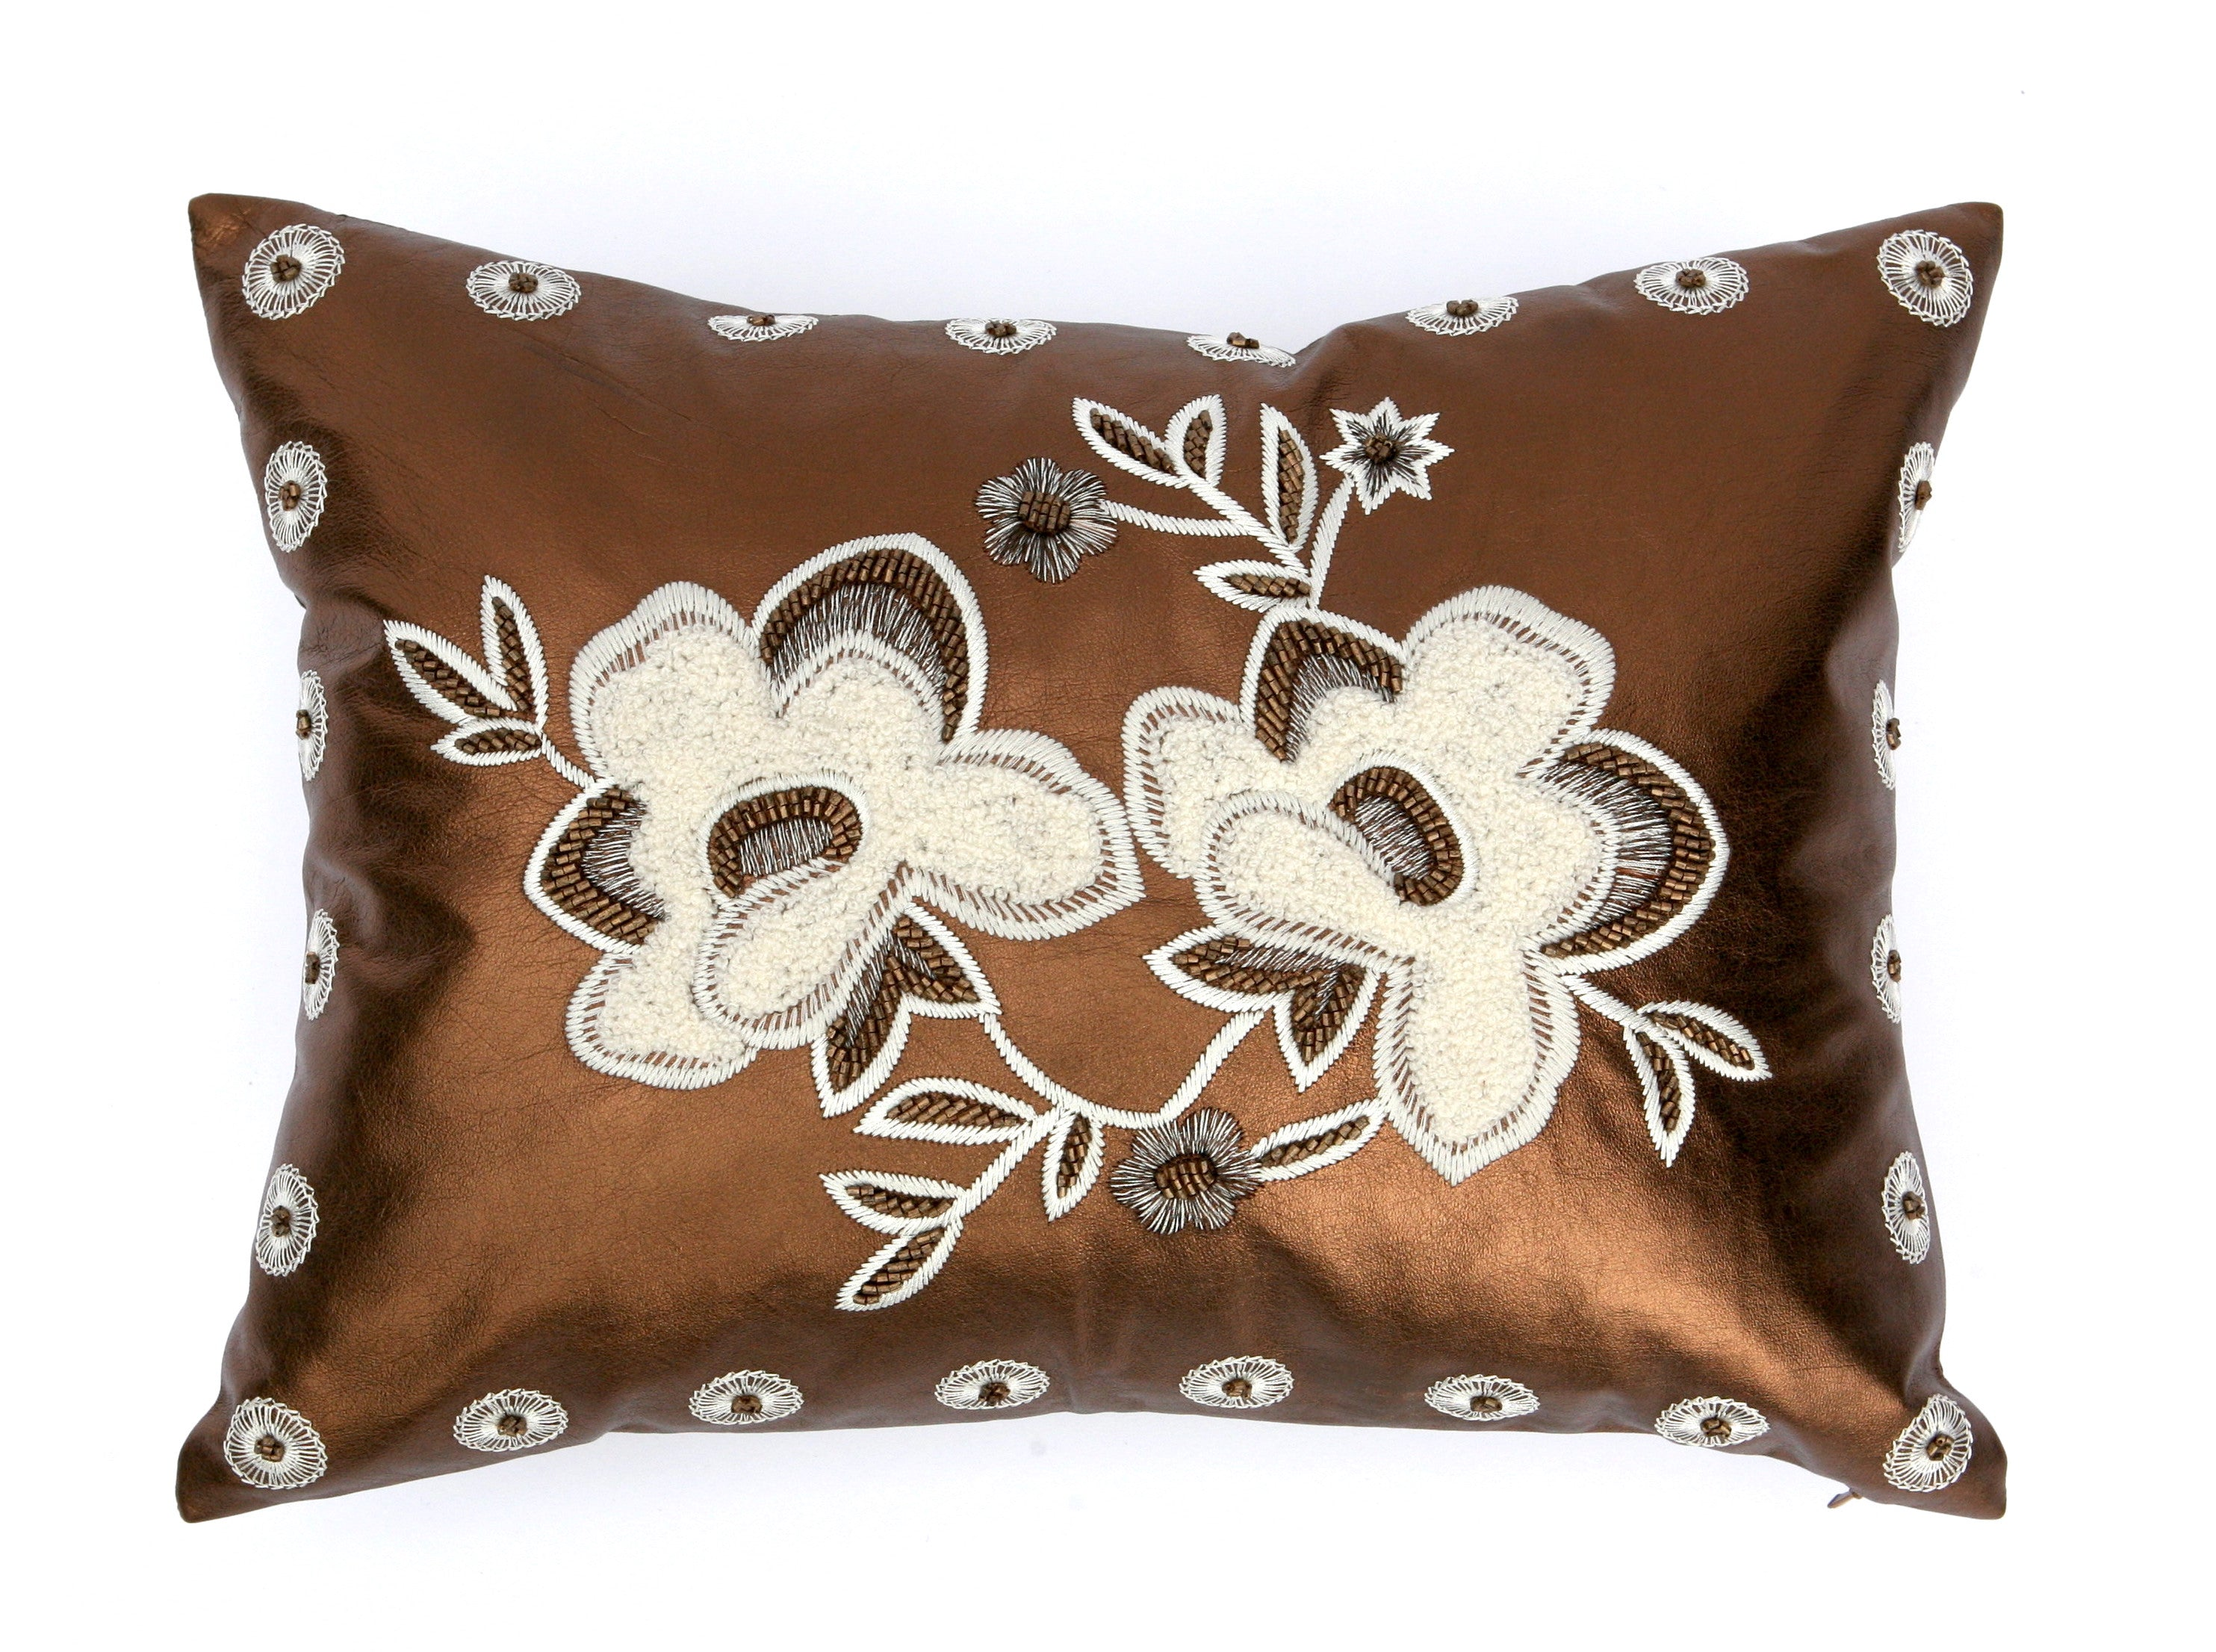 Bronze 'Metallic Garden' Pillow: Small